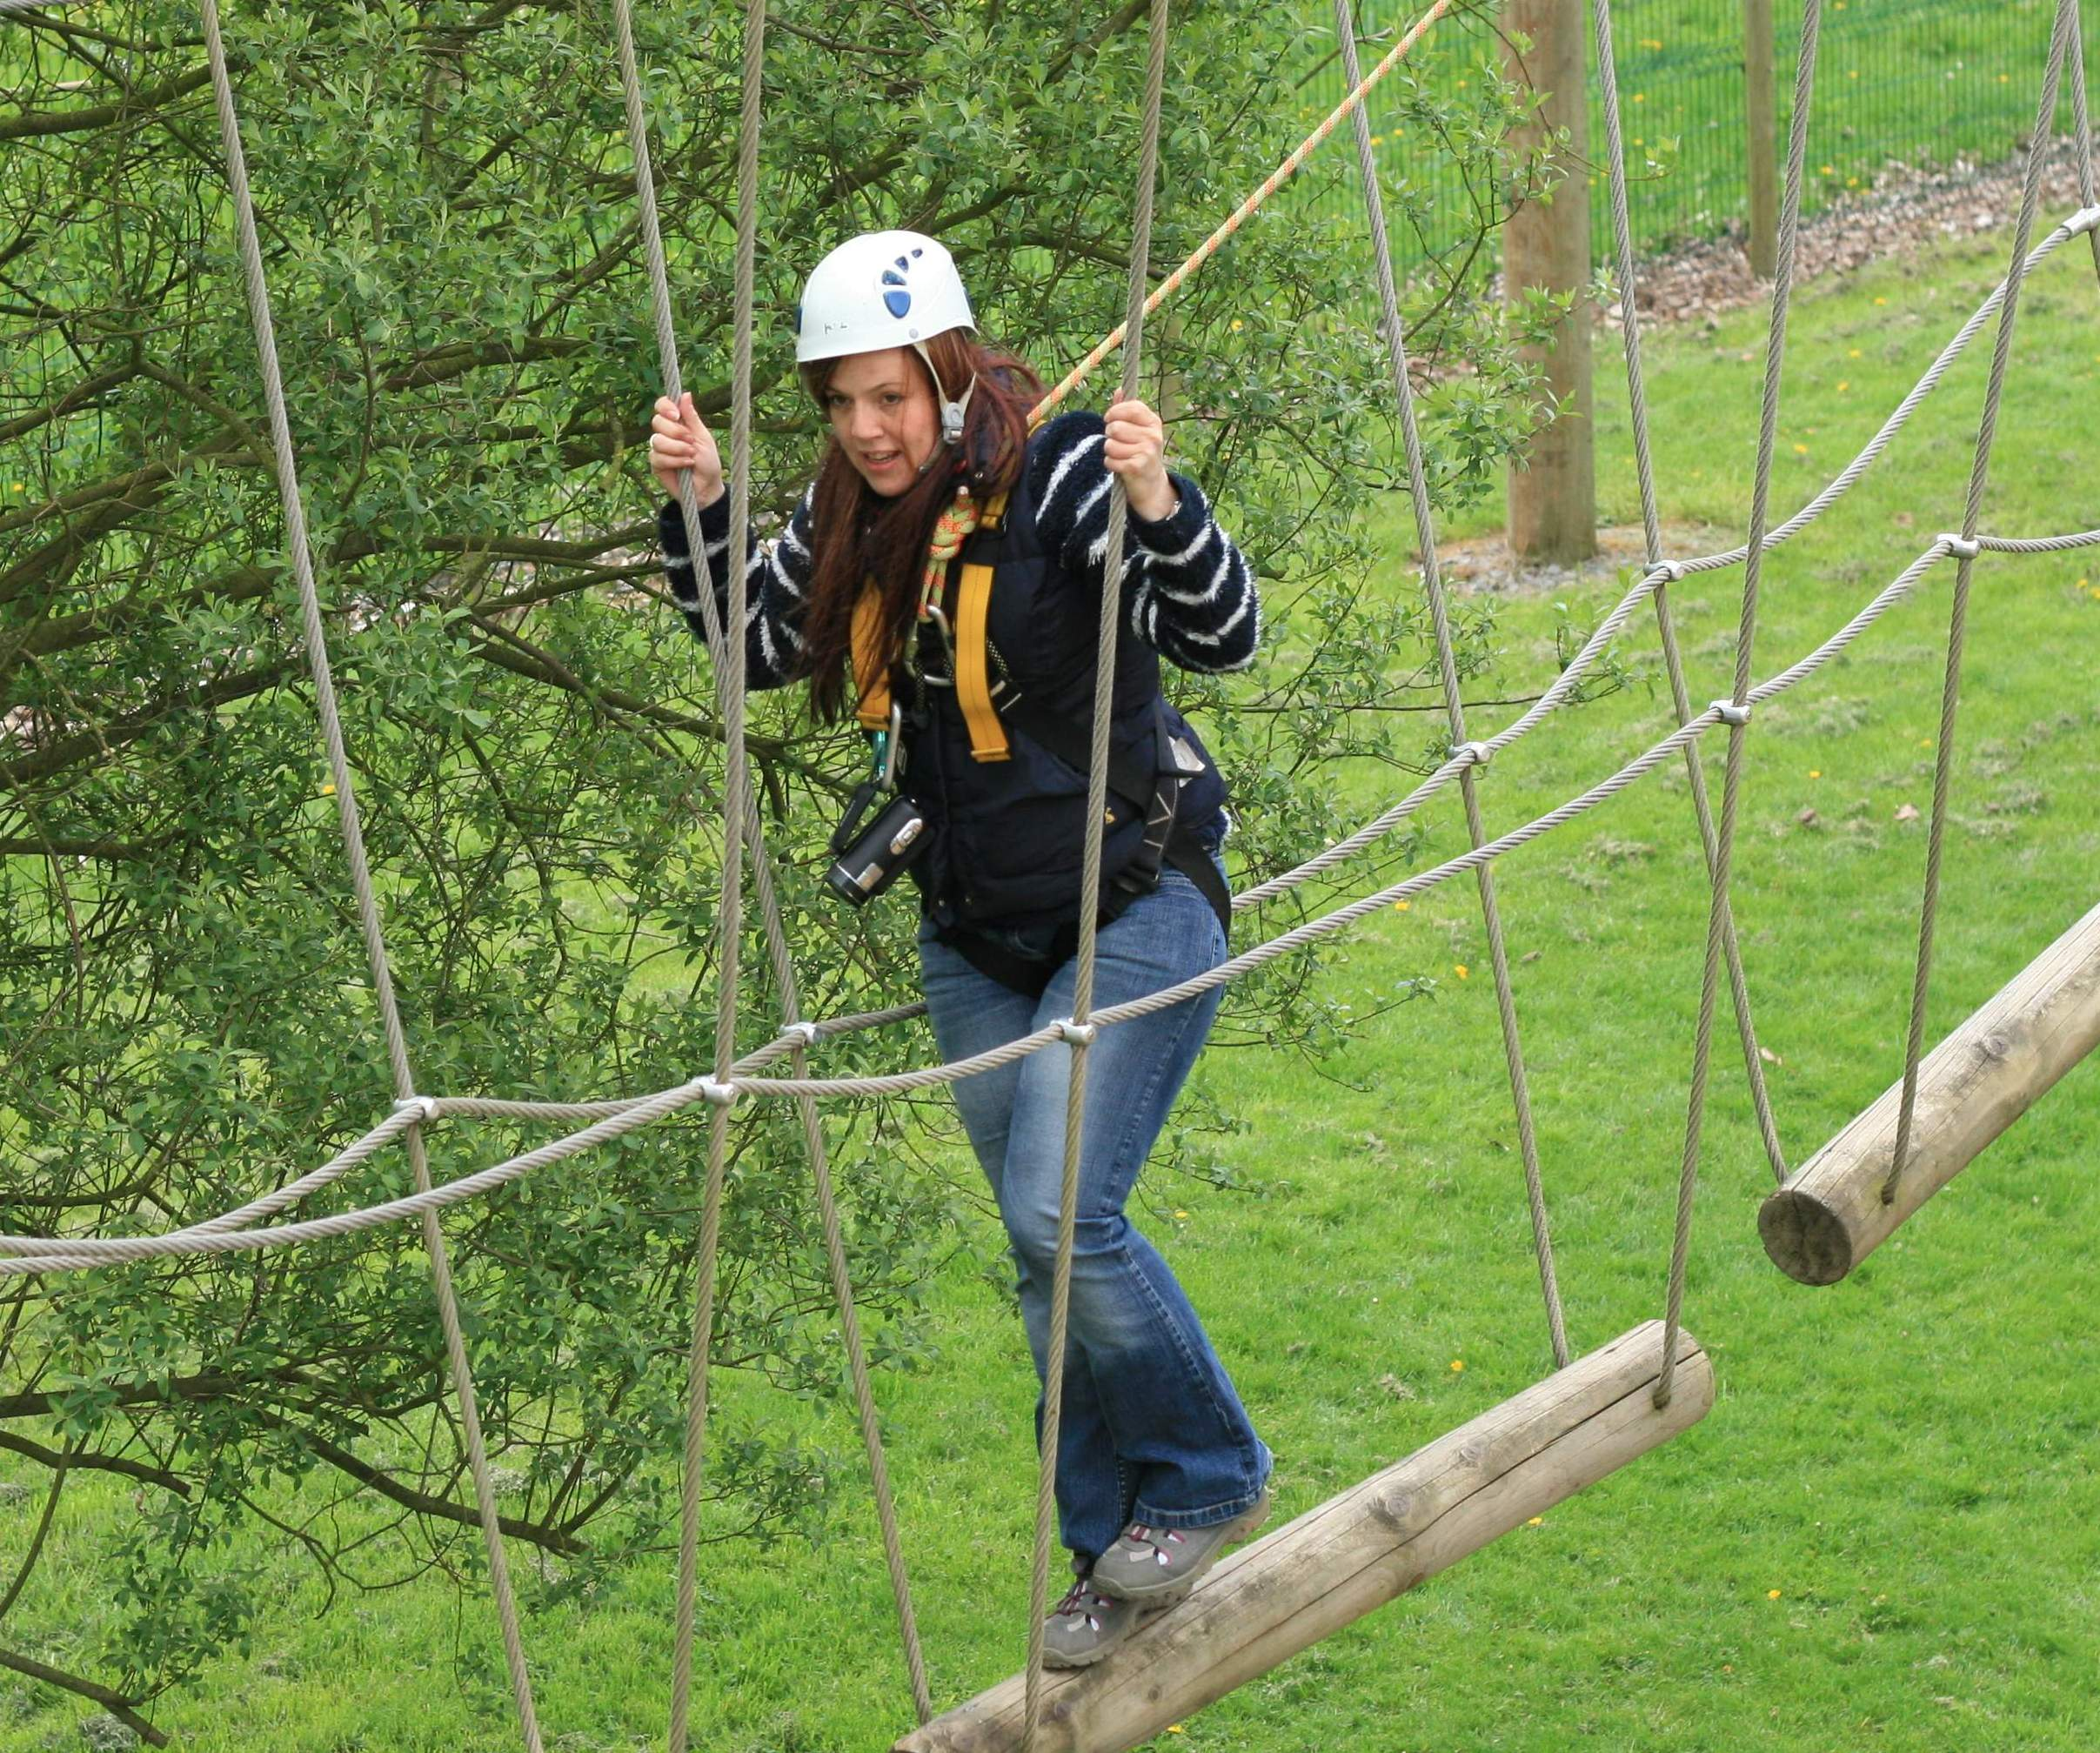 Things to do in England Milton, United Kingdom - Aerial Extreme Half Term Discount - YourDaysOut